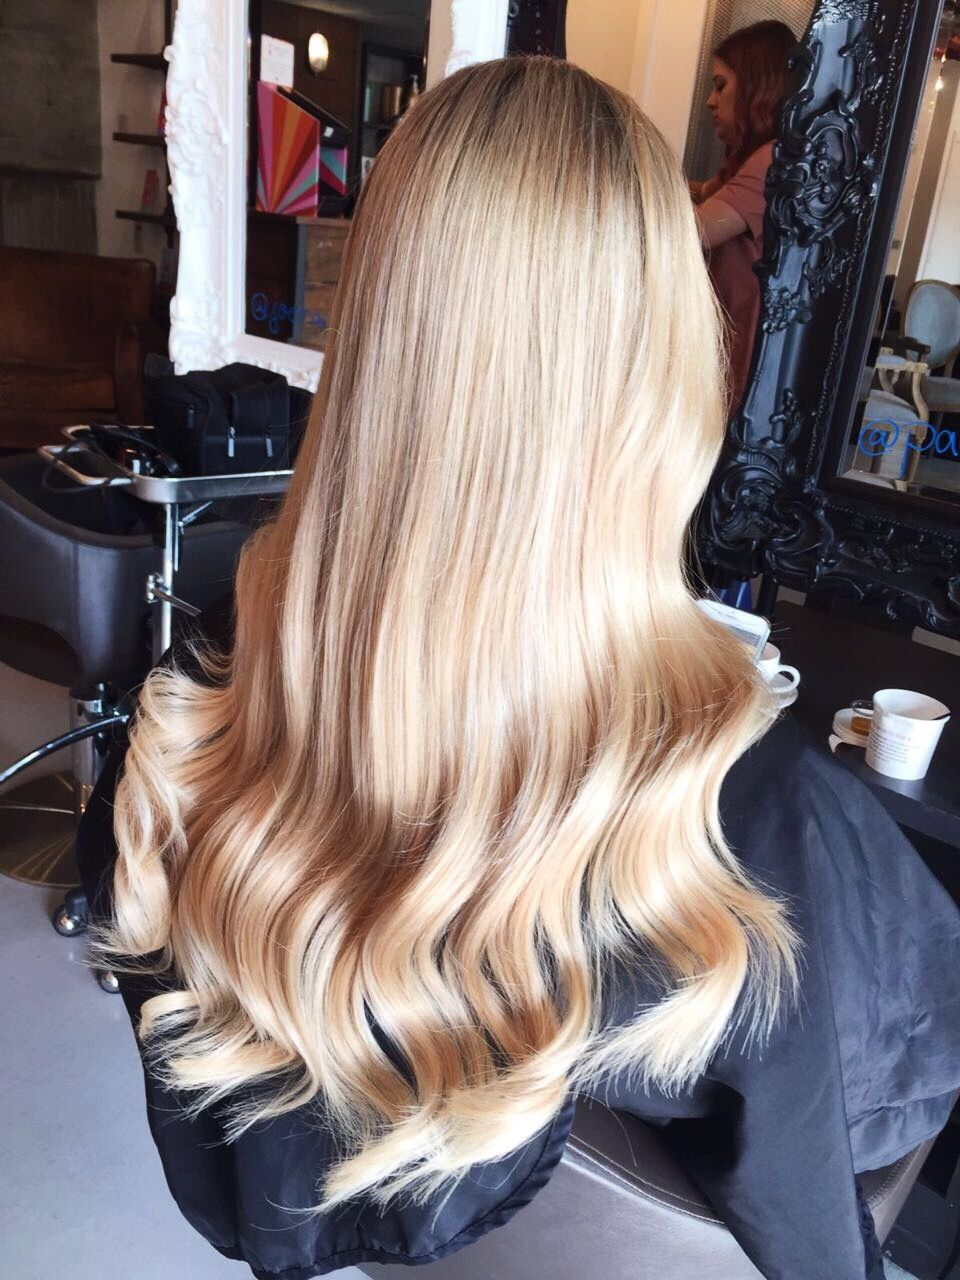 Hair Extensions High Quality Natural Extensions Hair Extensions